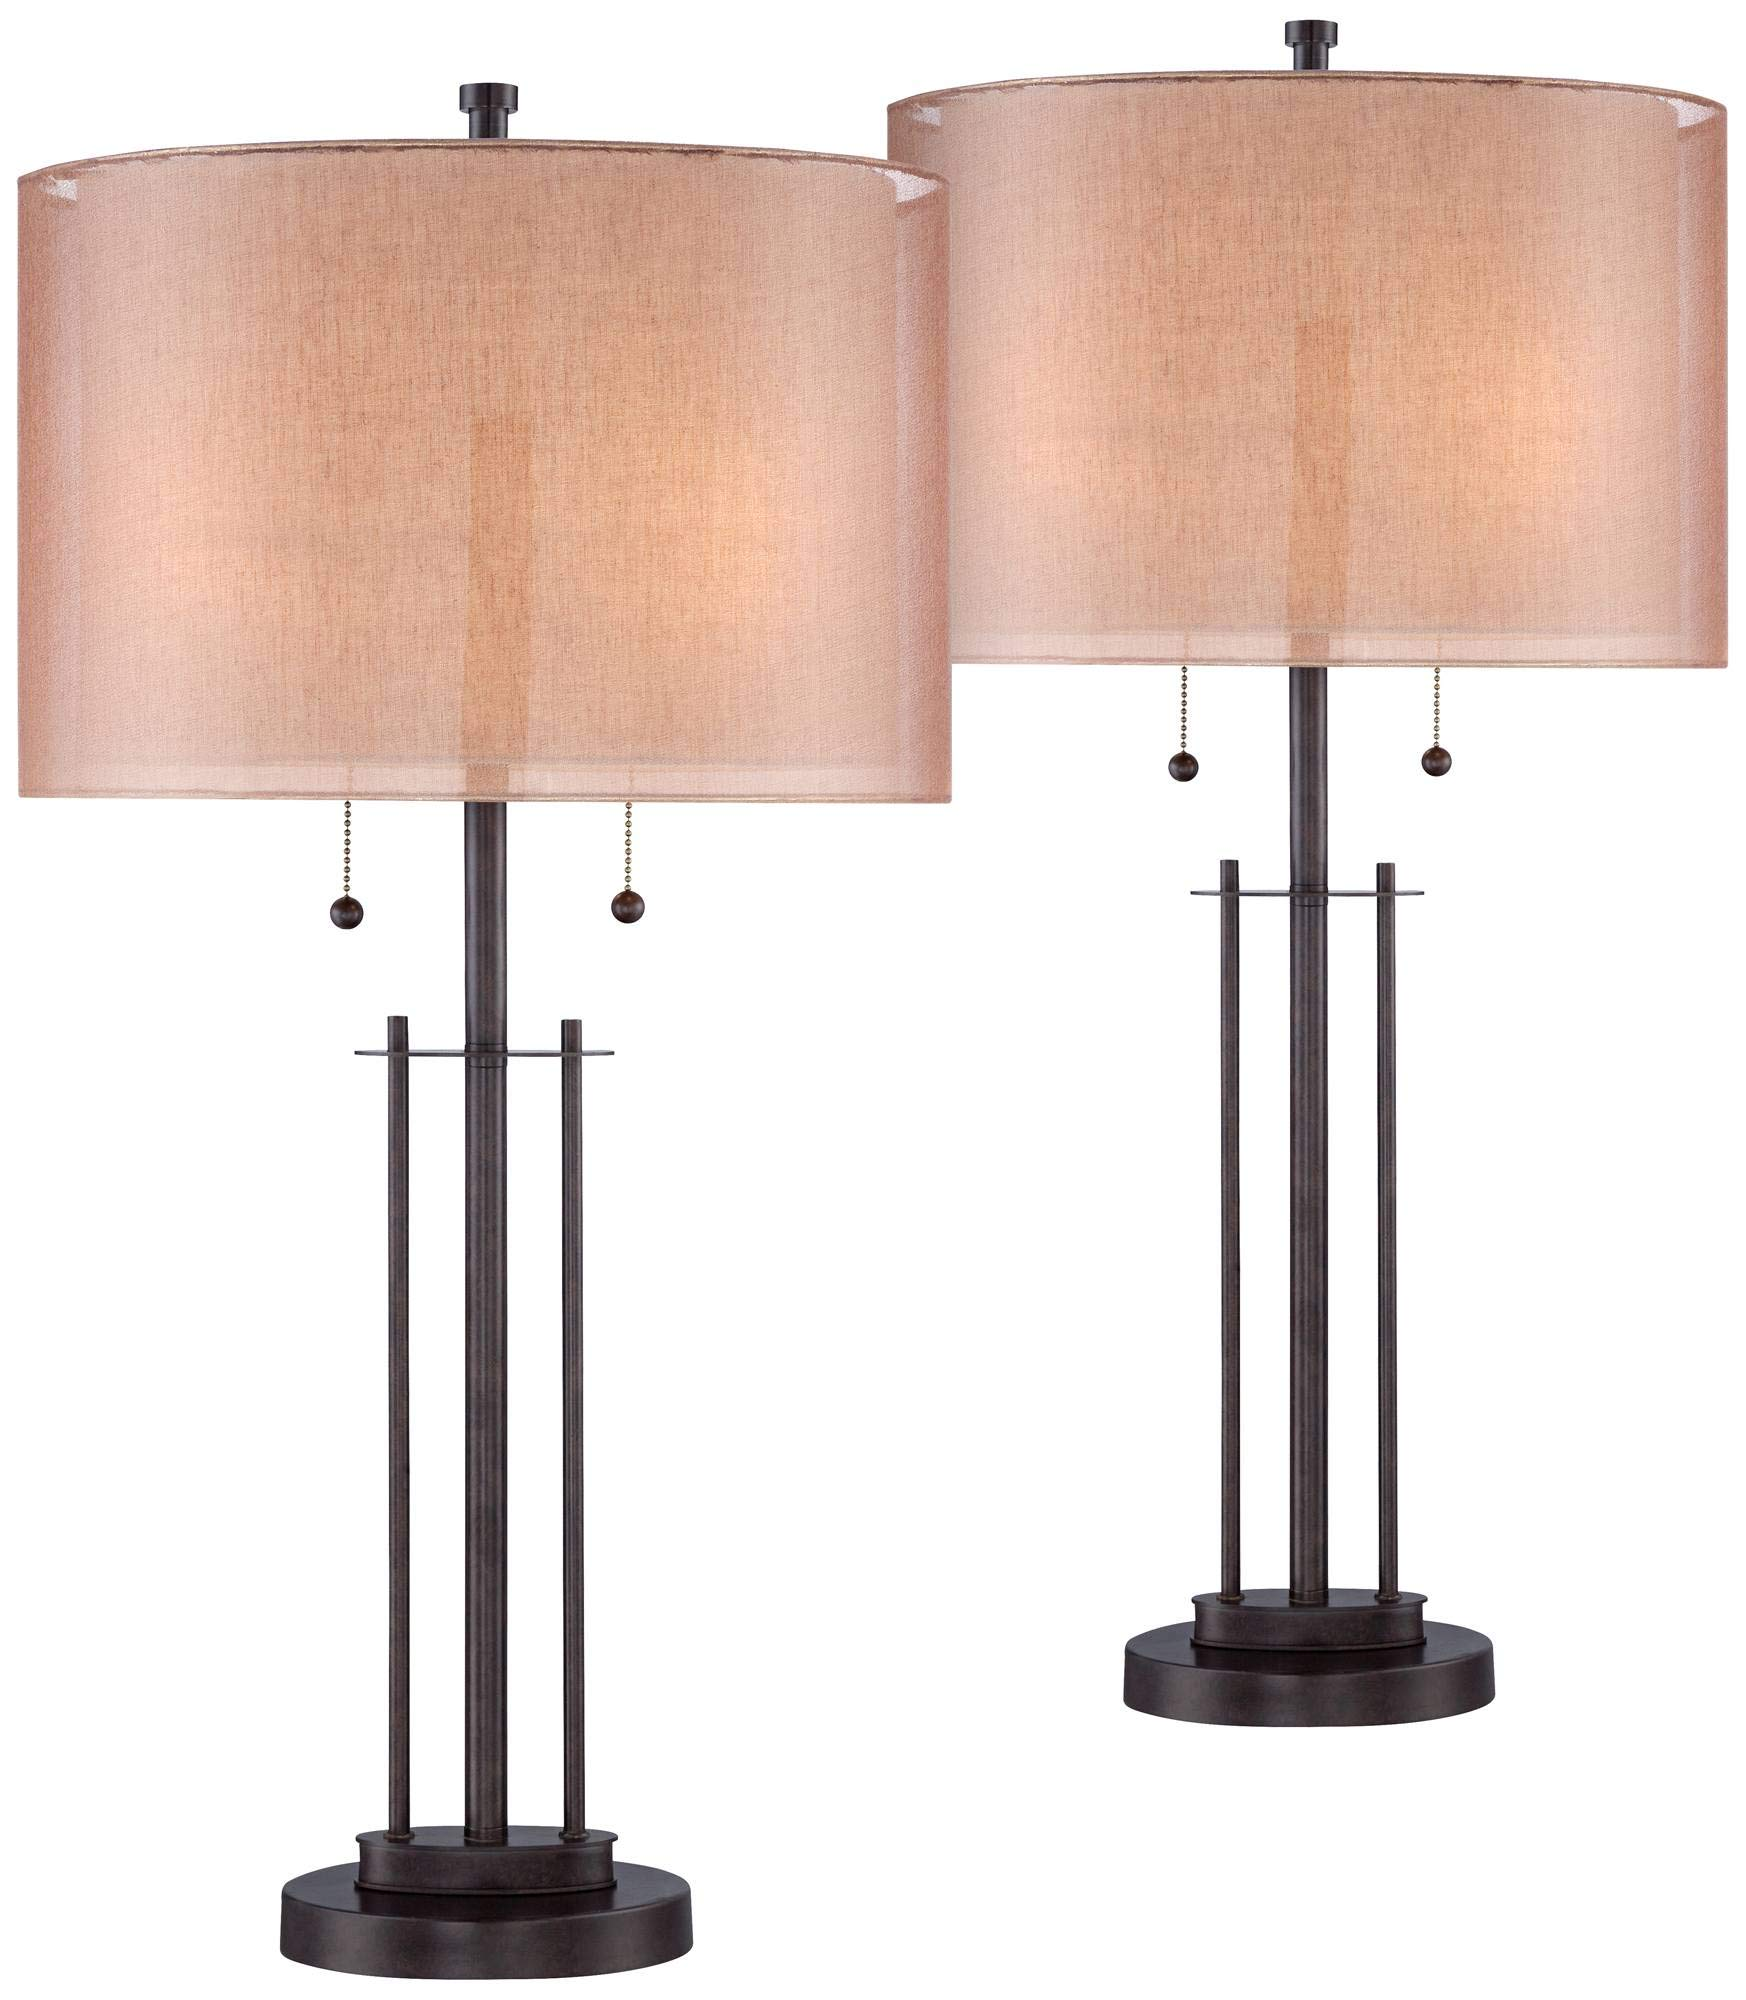 Modern Table Lamps Set of 2 Bronze Metal Open Base Double Drum Shade for Living Room Family Bedroom Bedside - Franklin Iron Works